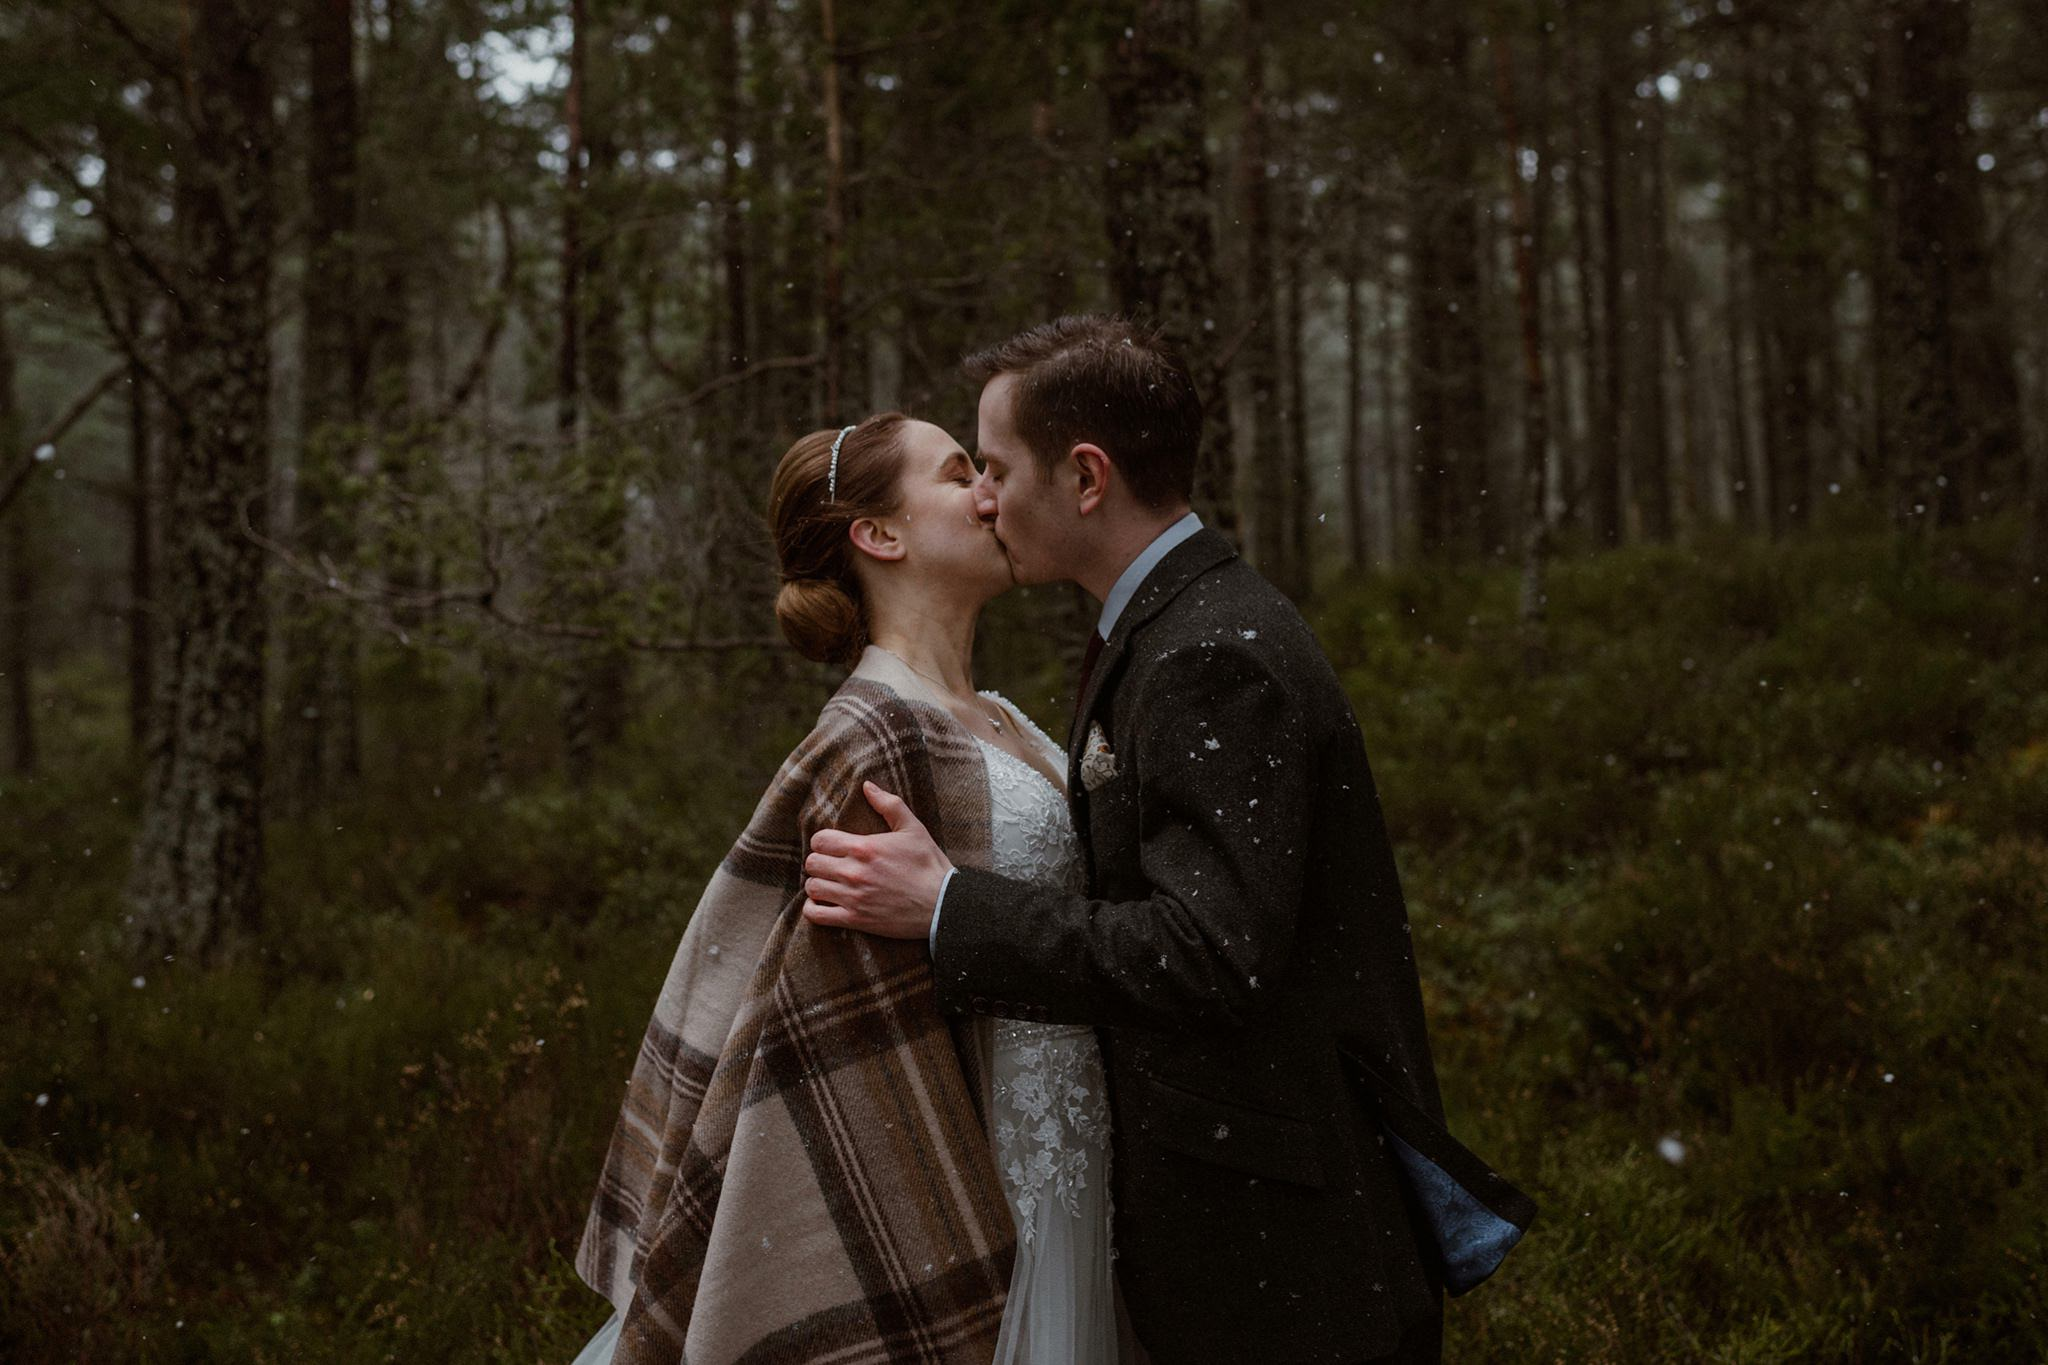 Just married in the snow Rothiemurchus forest Cairngorms Scotland